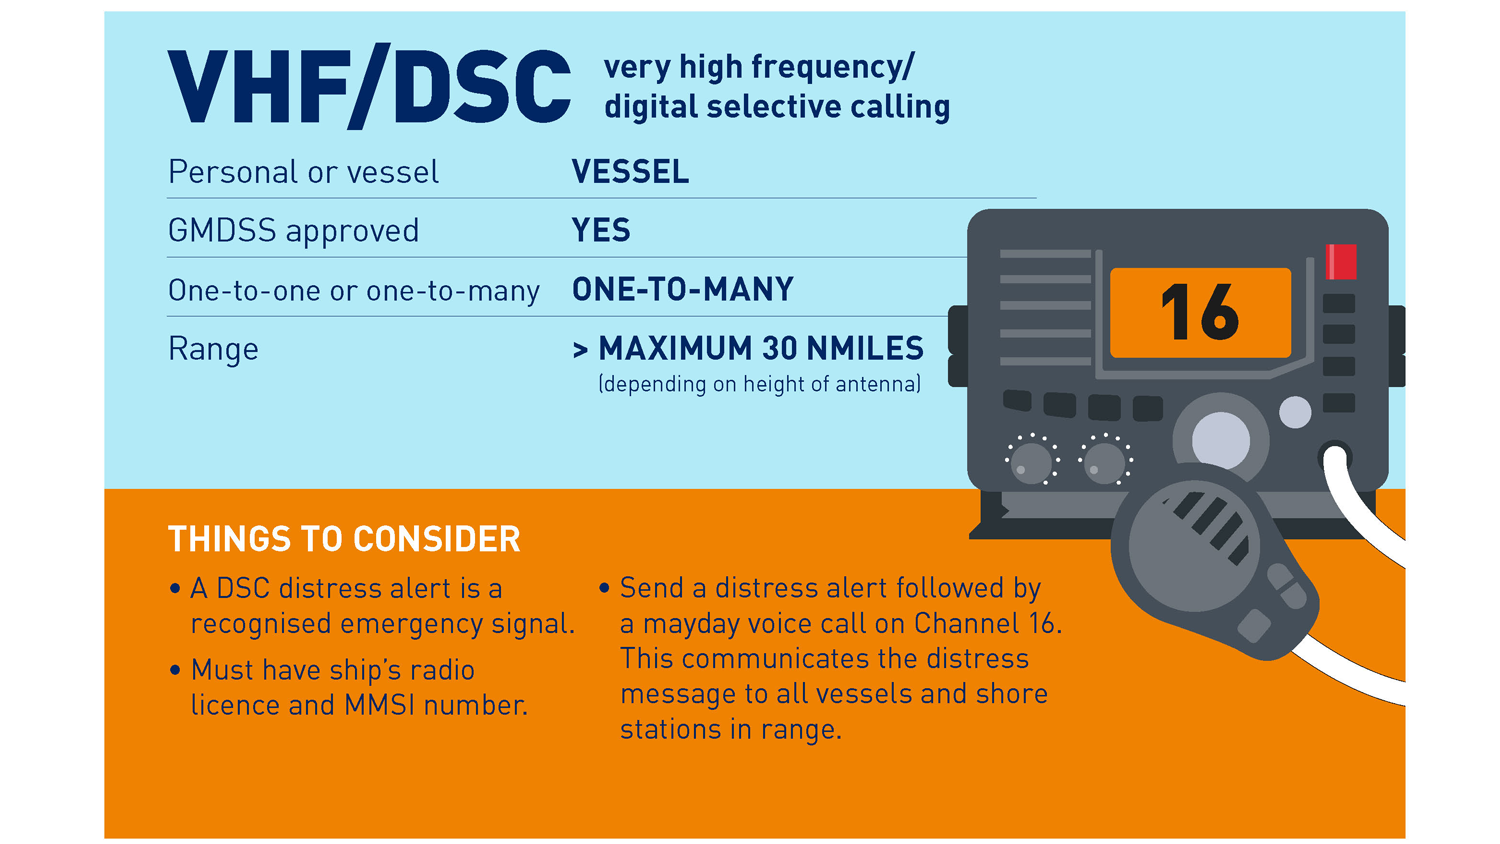 Infographic showing information about VHF/DSC radios and things to consider for usage